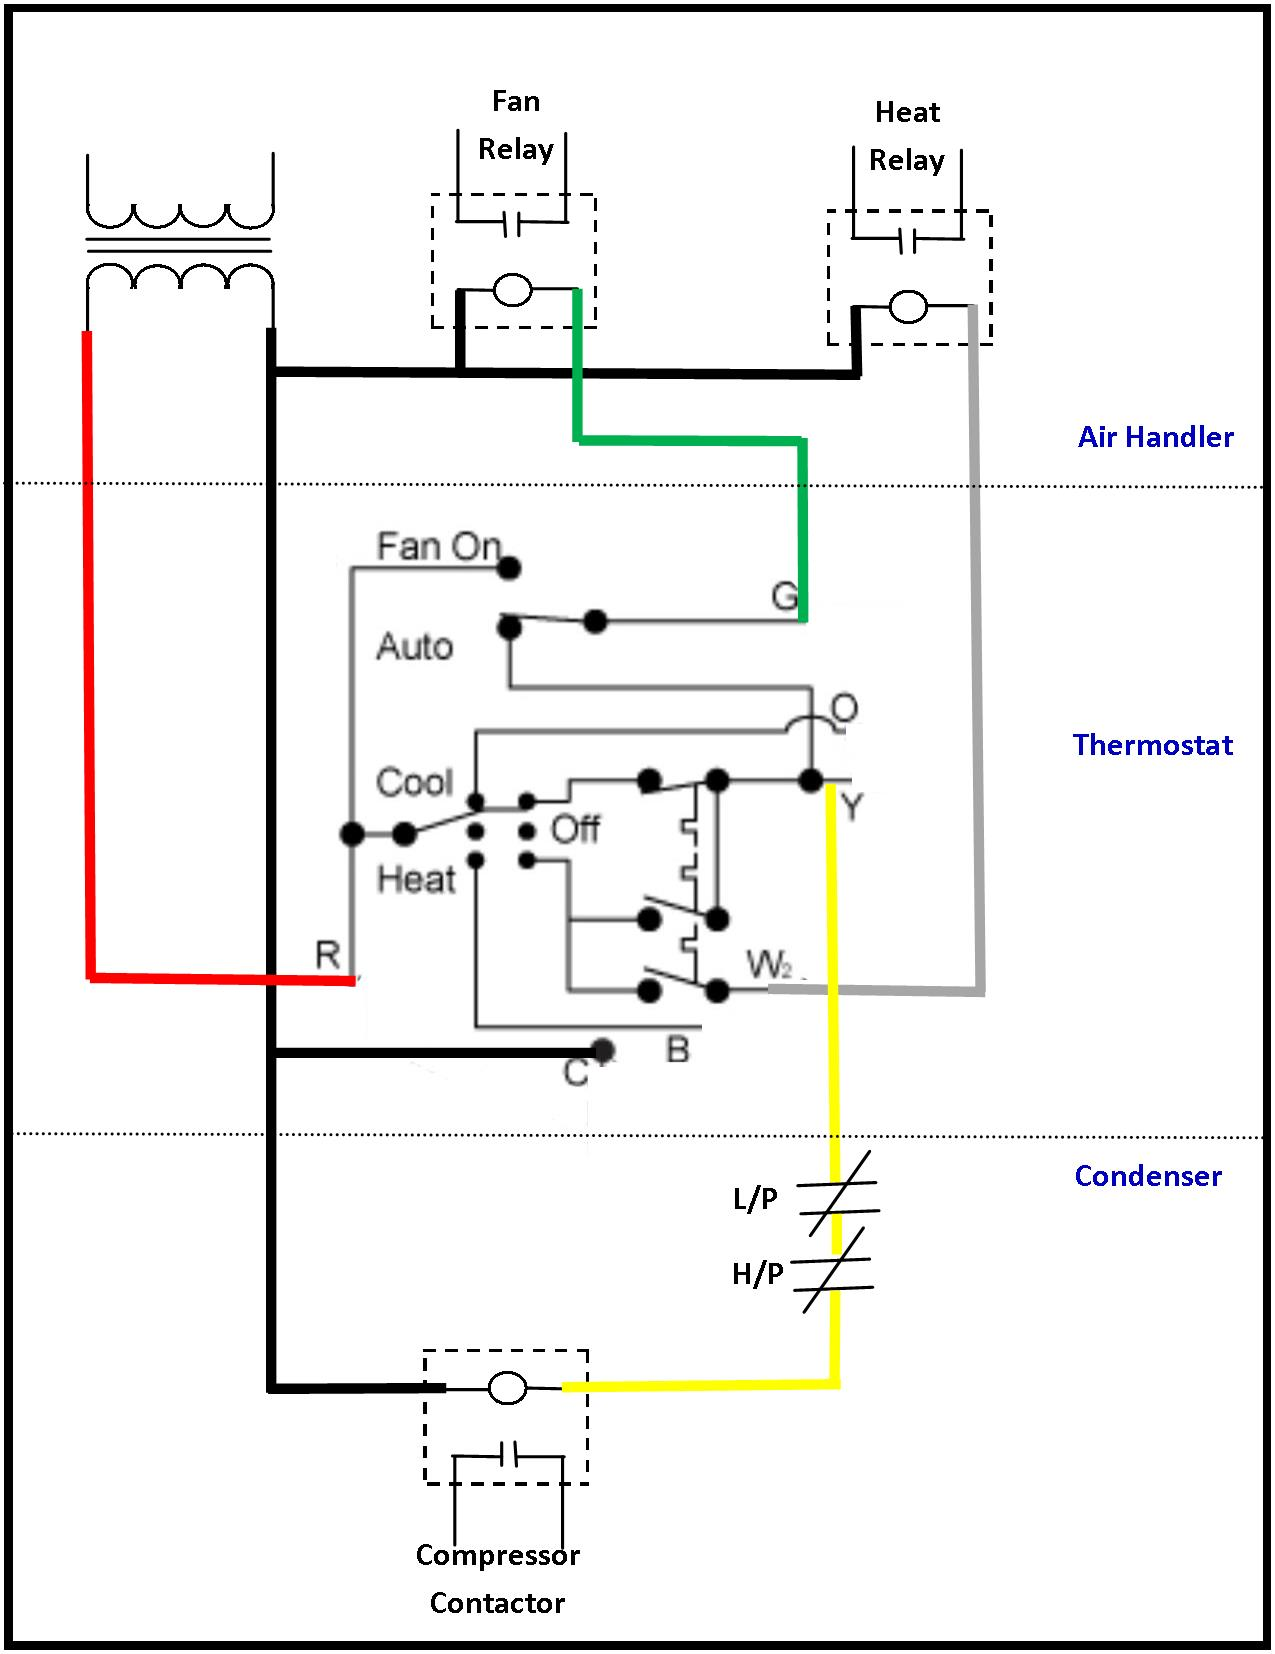 ac relay wiring diagram ac image wiring diagram ac relay wiring hei wiring harness hd flhr wiring diagram 2008 on ac relay wiring diagram